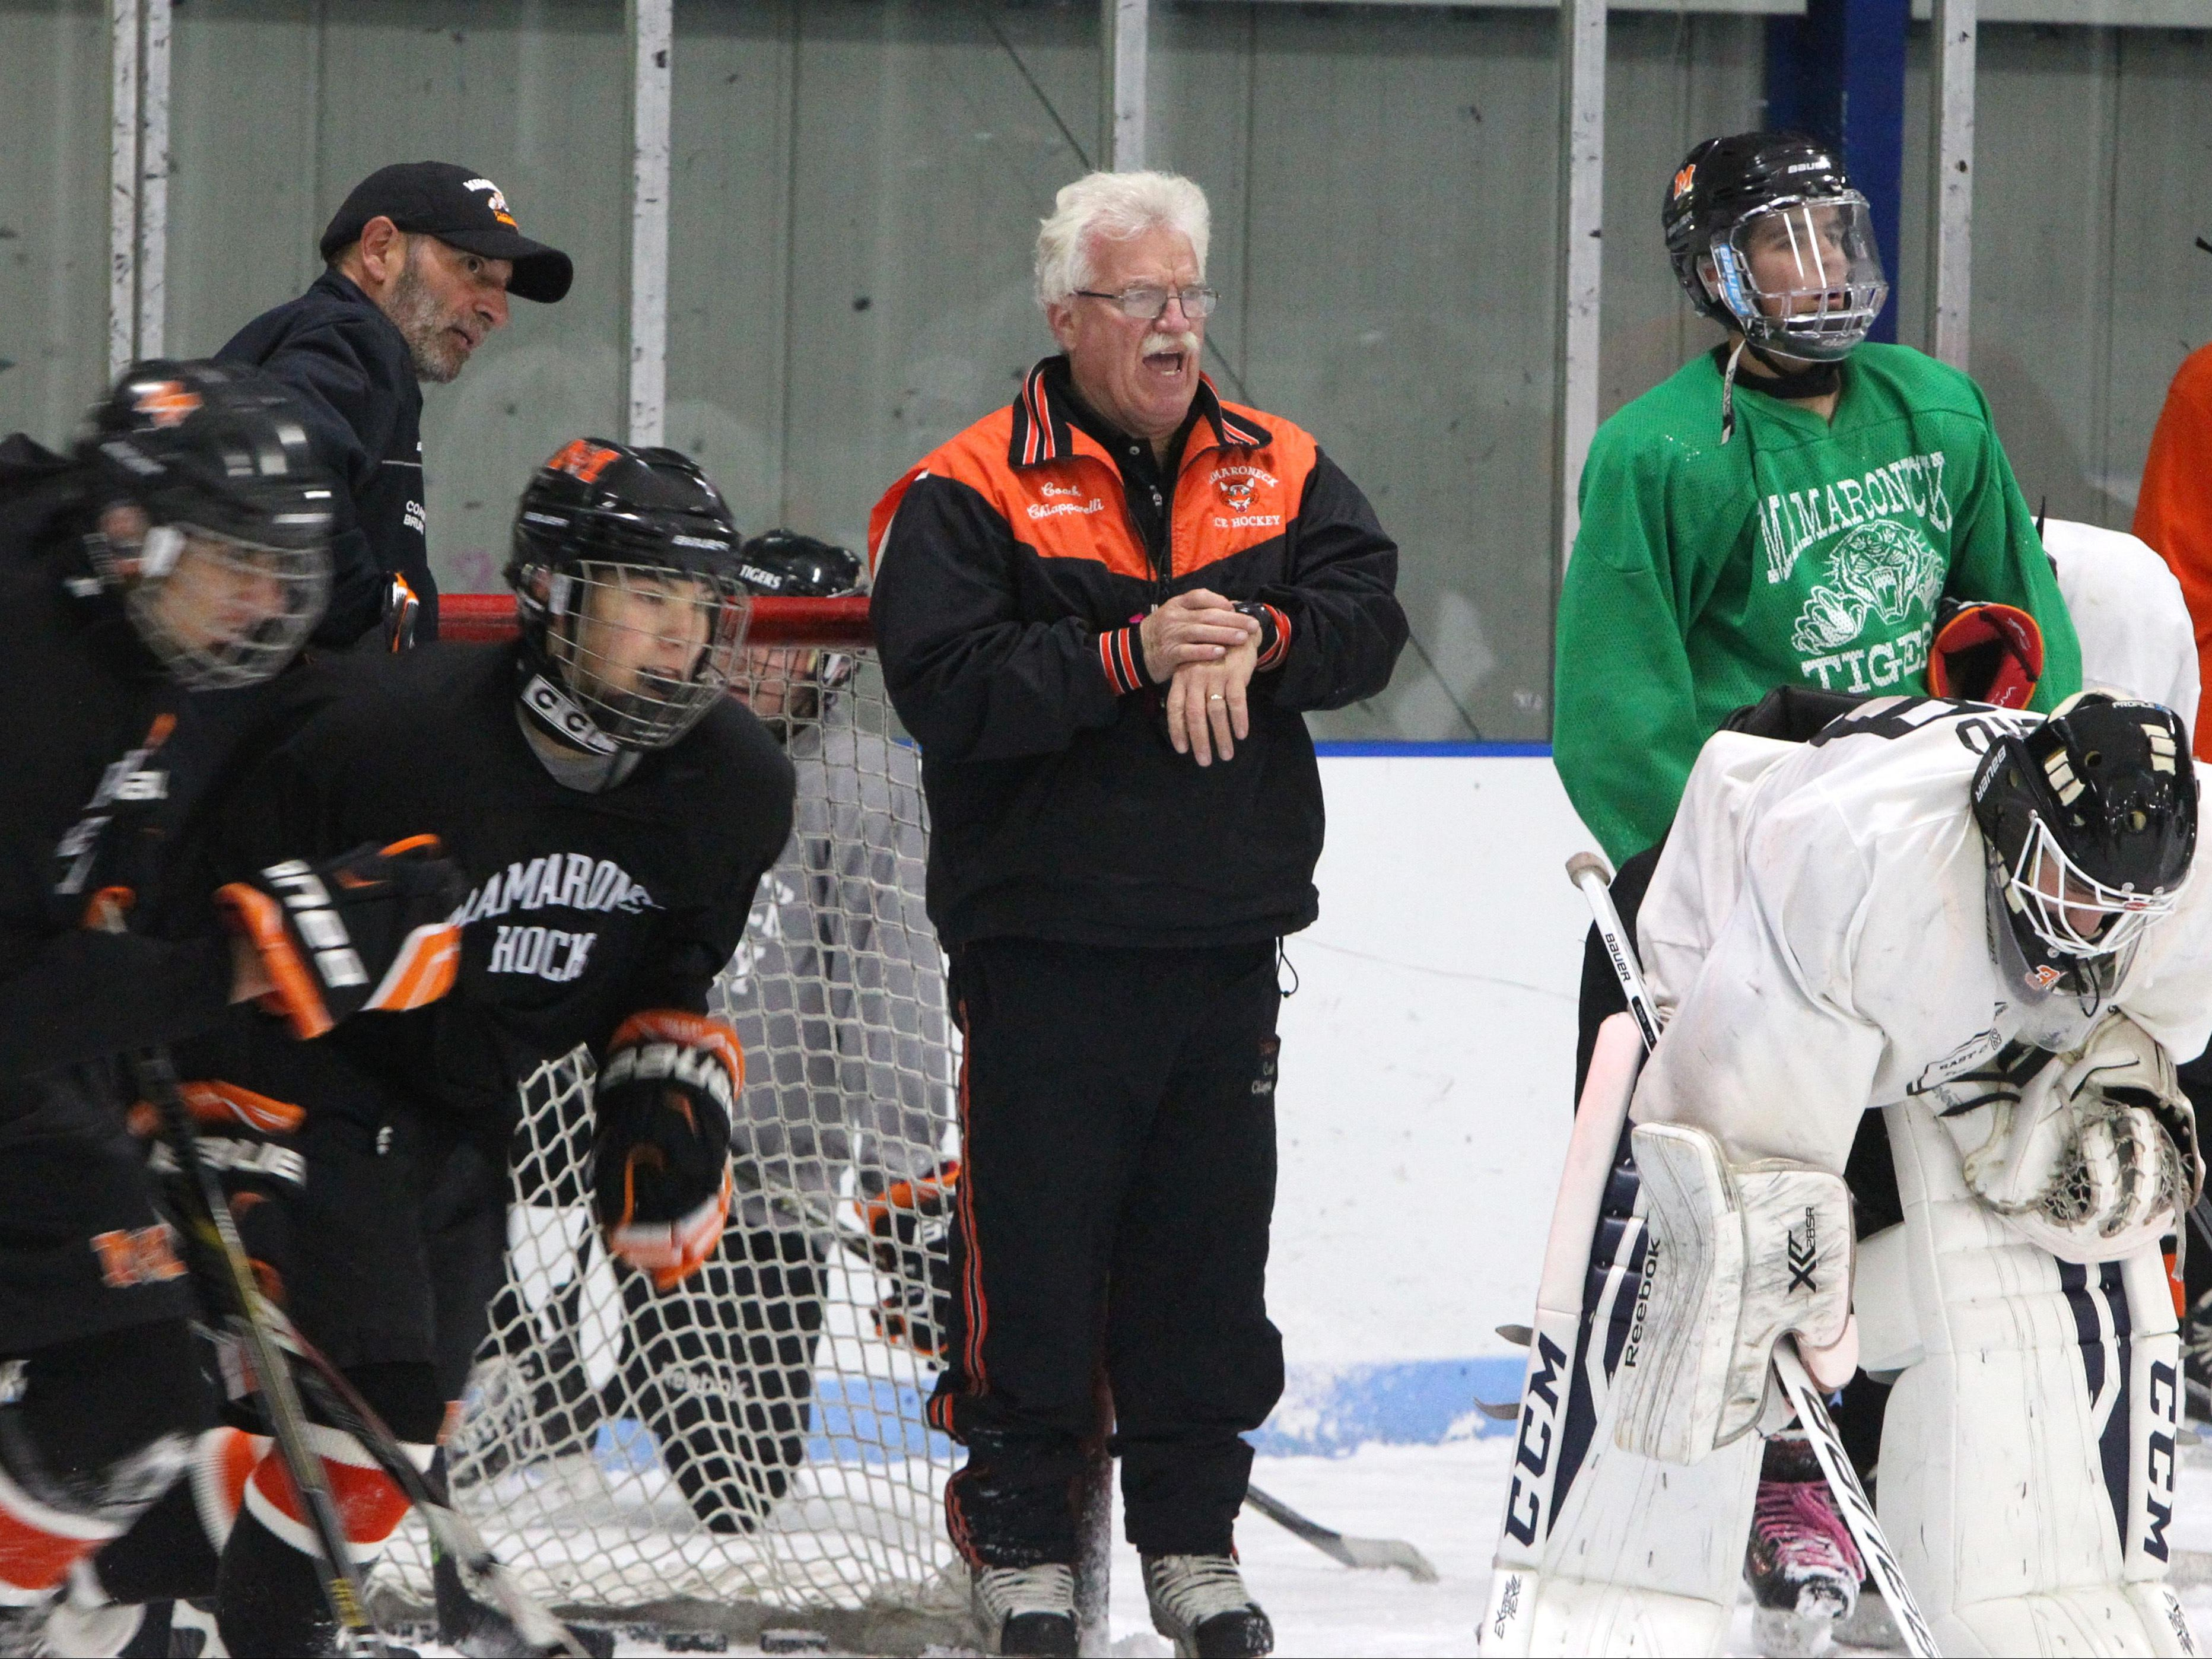 Mamaroneck hockey coach Mike Chiapparelli runs his team through sprints during a practice at Hommocks ice rink Nov. 9, 2016.